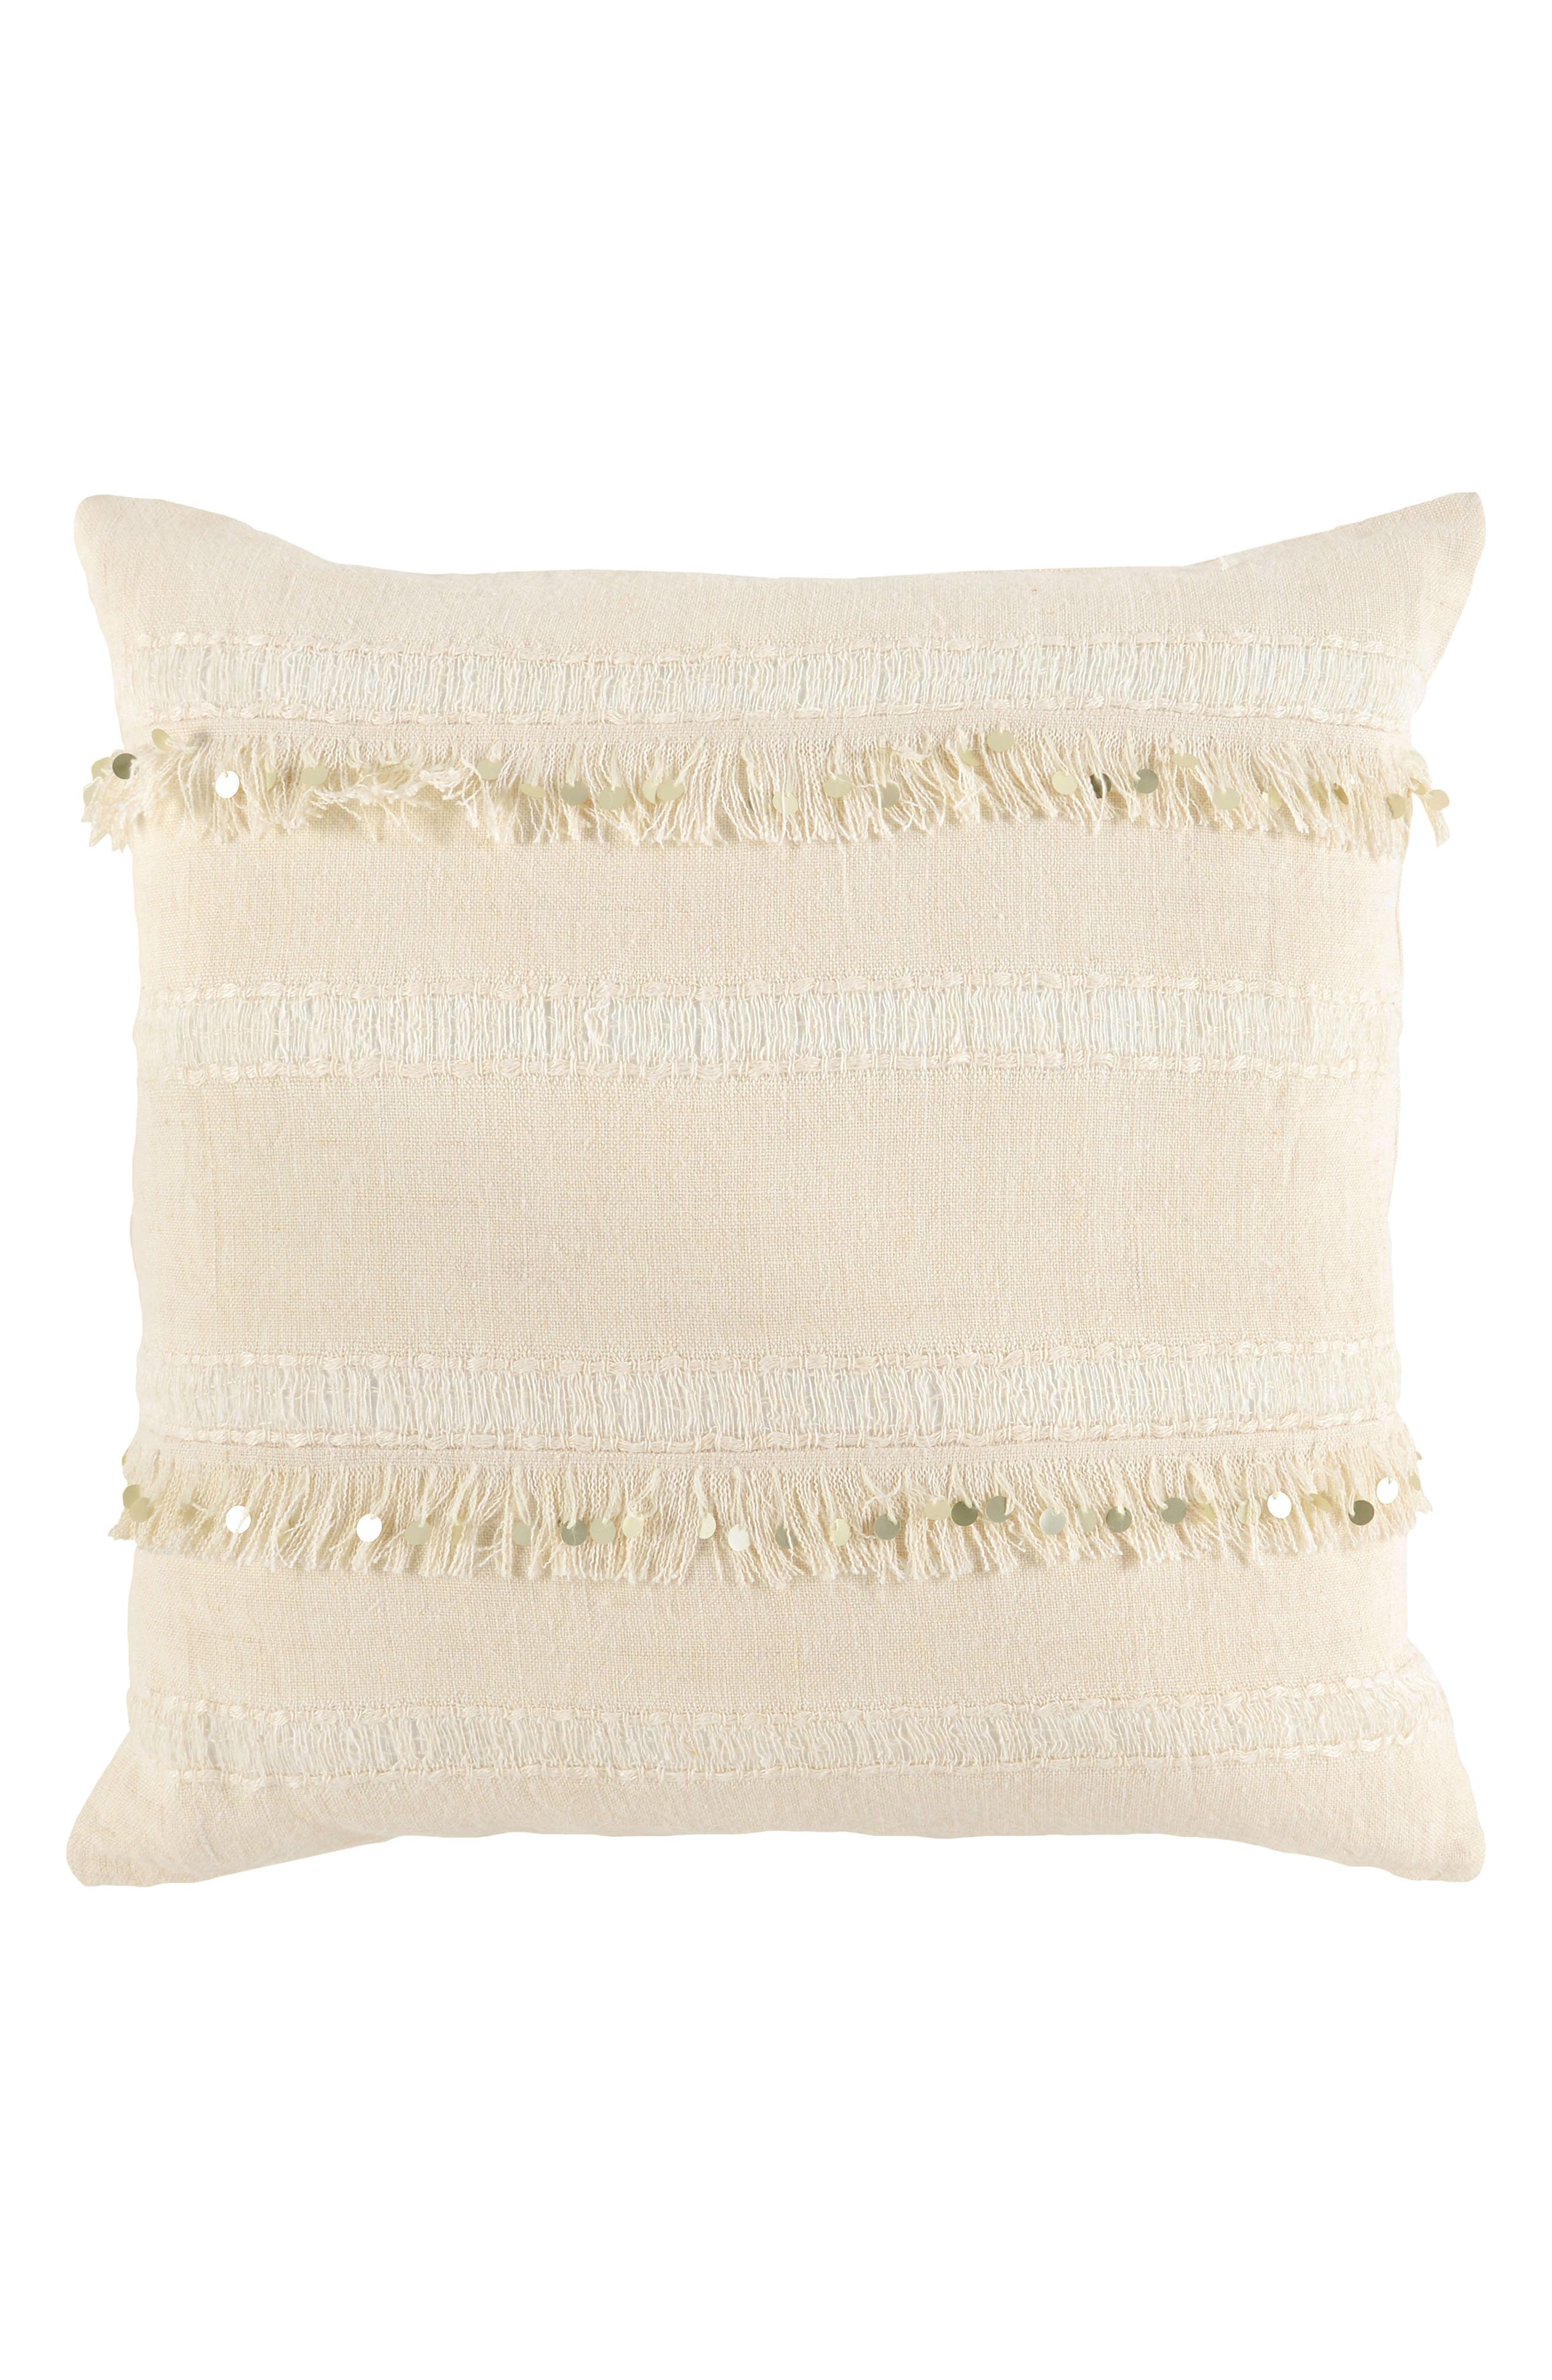 Dirade Accent Pillow,                         Main,                         color, Ivory